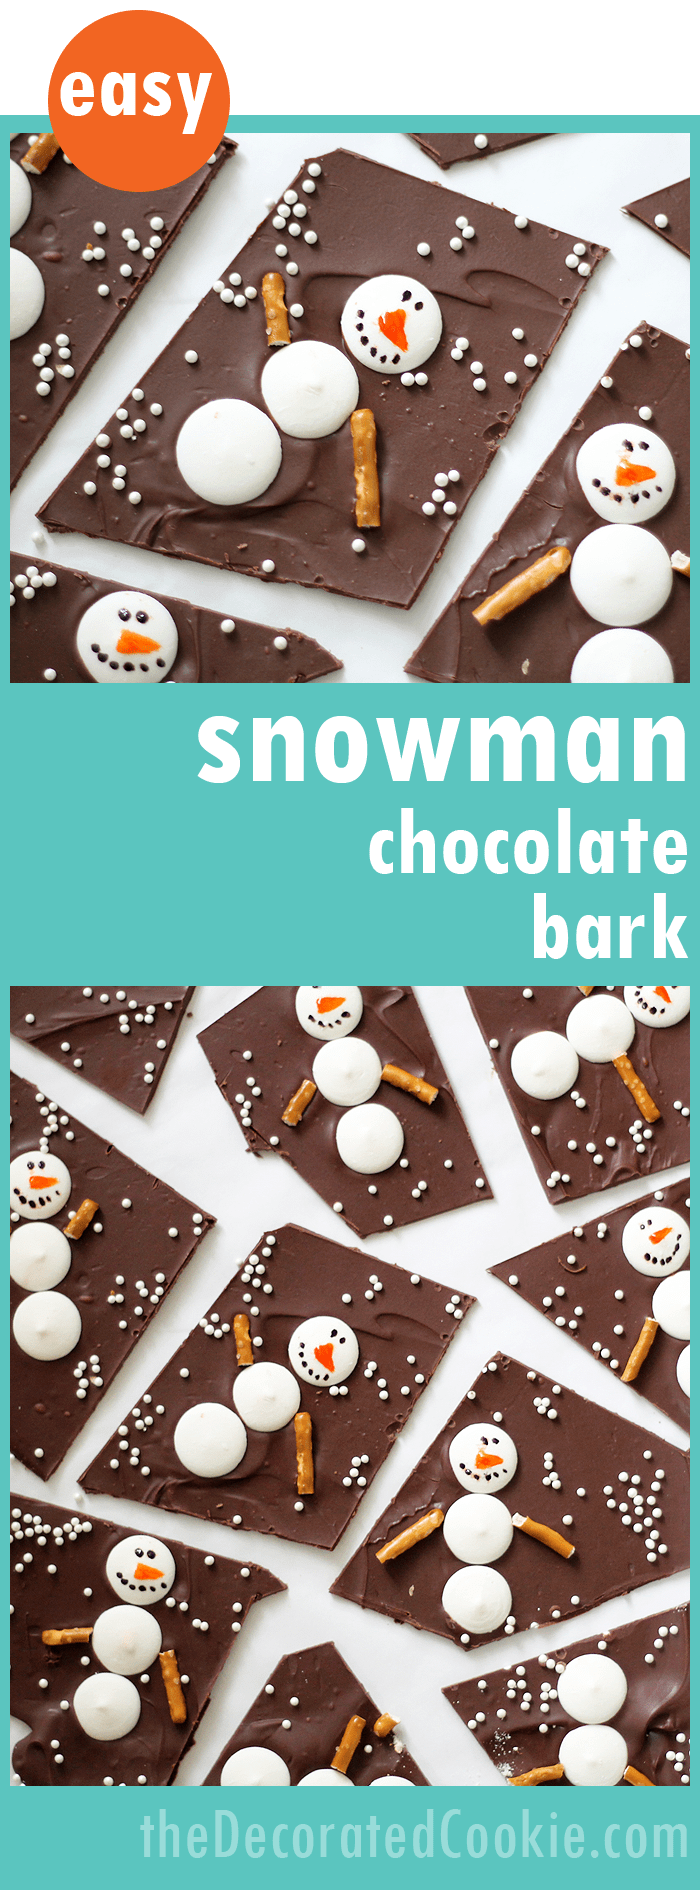 Easy snowman chocolate bark, a great homemade holiday food gift idea. Fun Christmas treats.